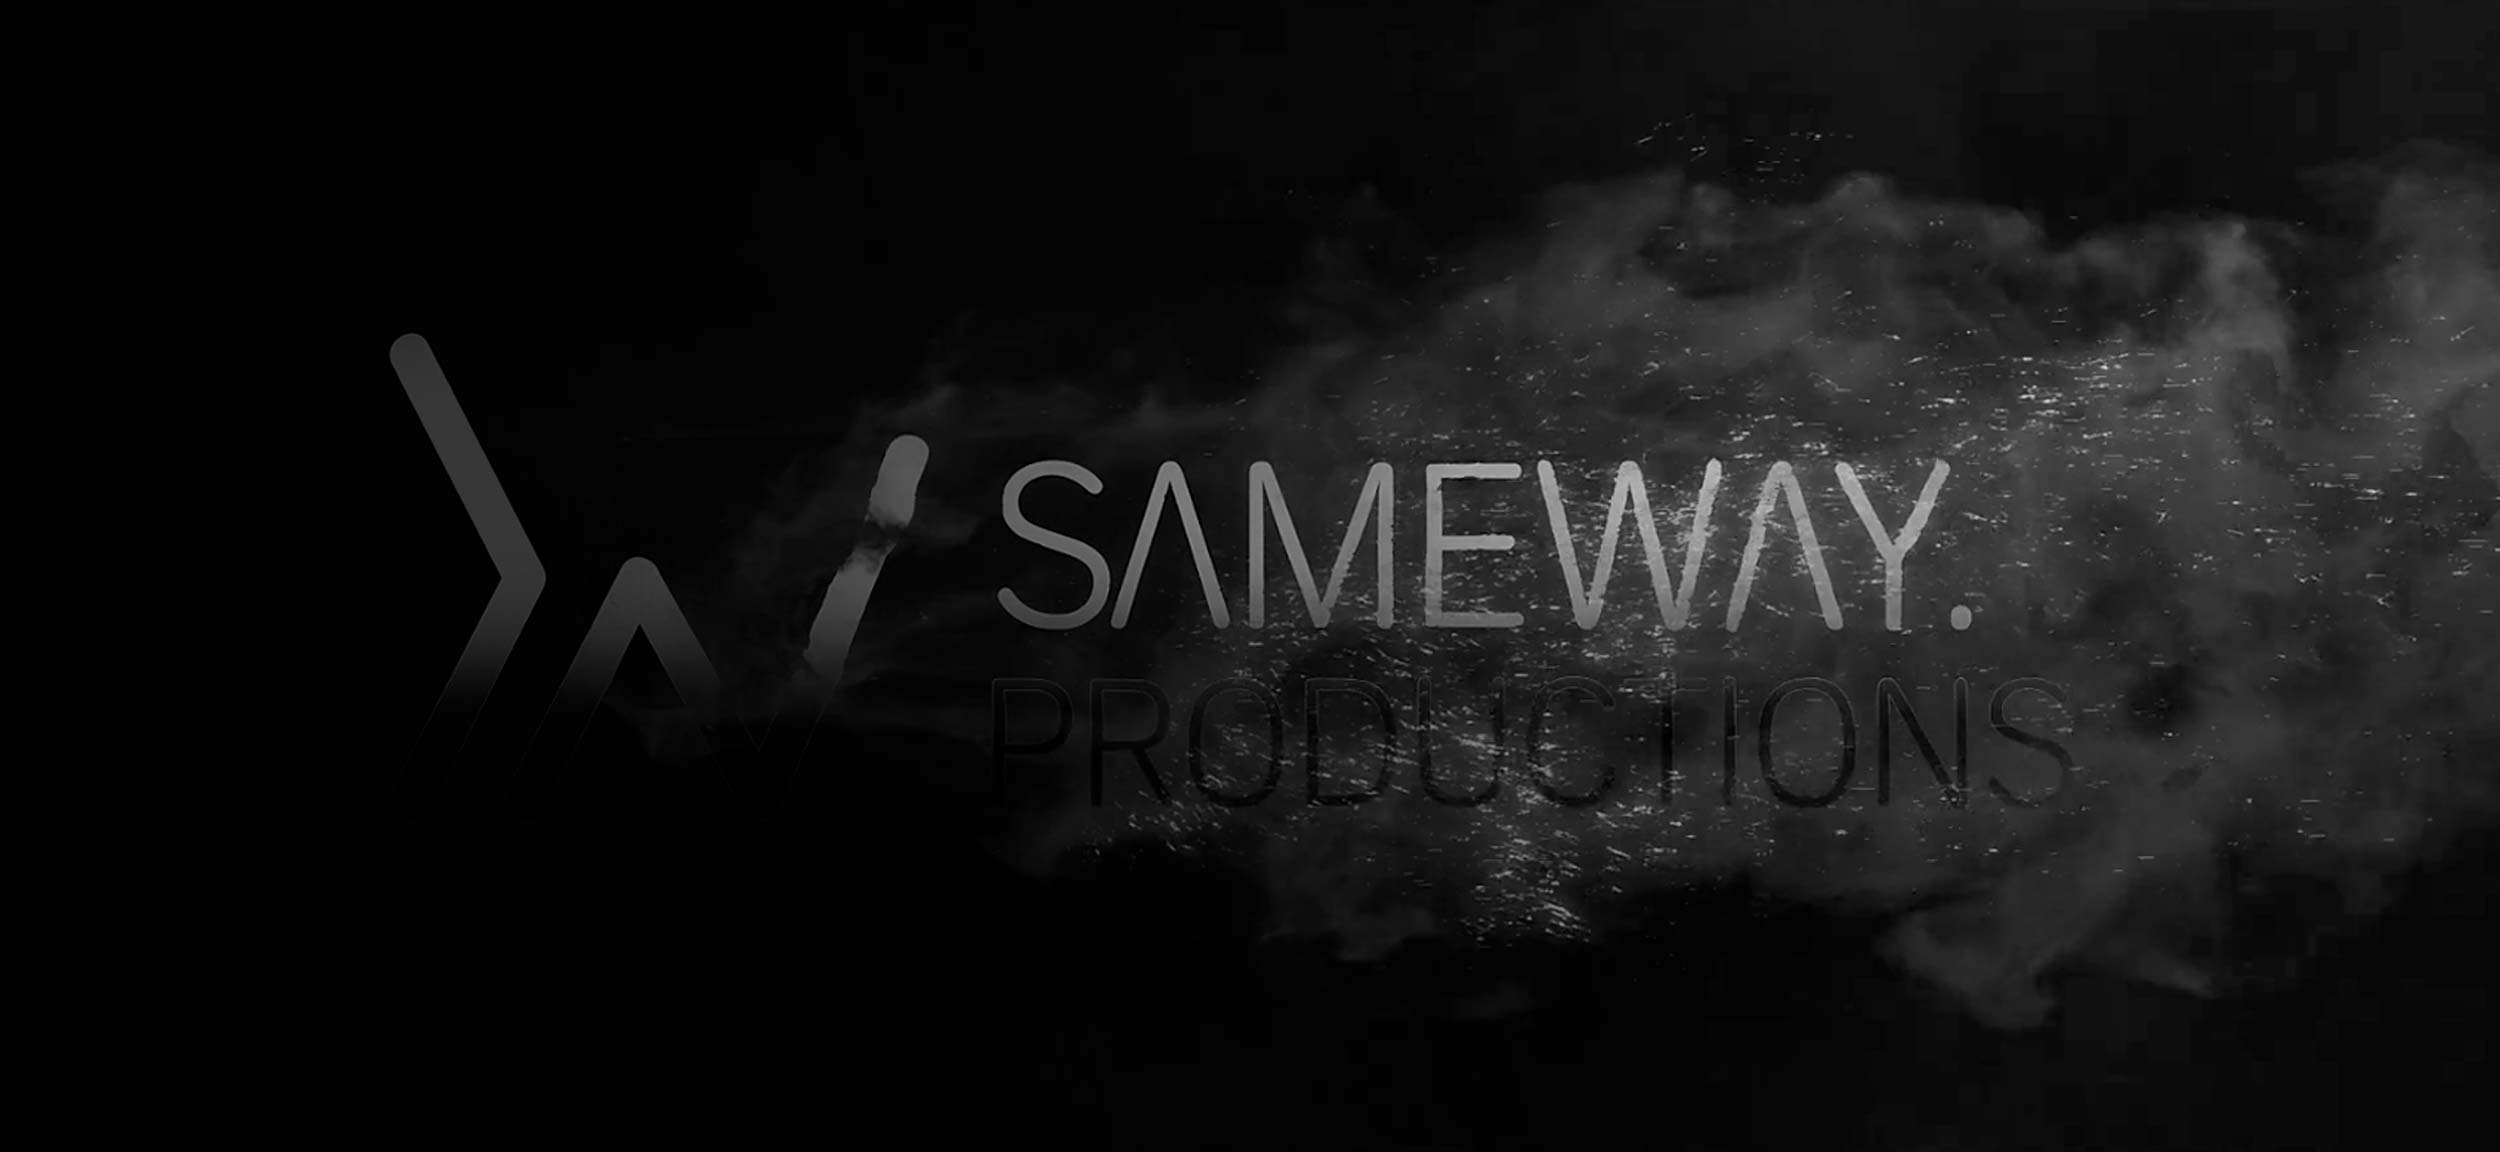 samewayproductions